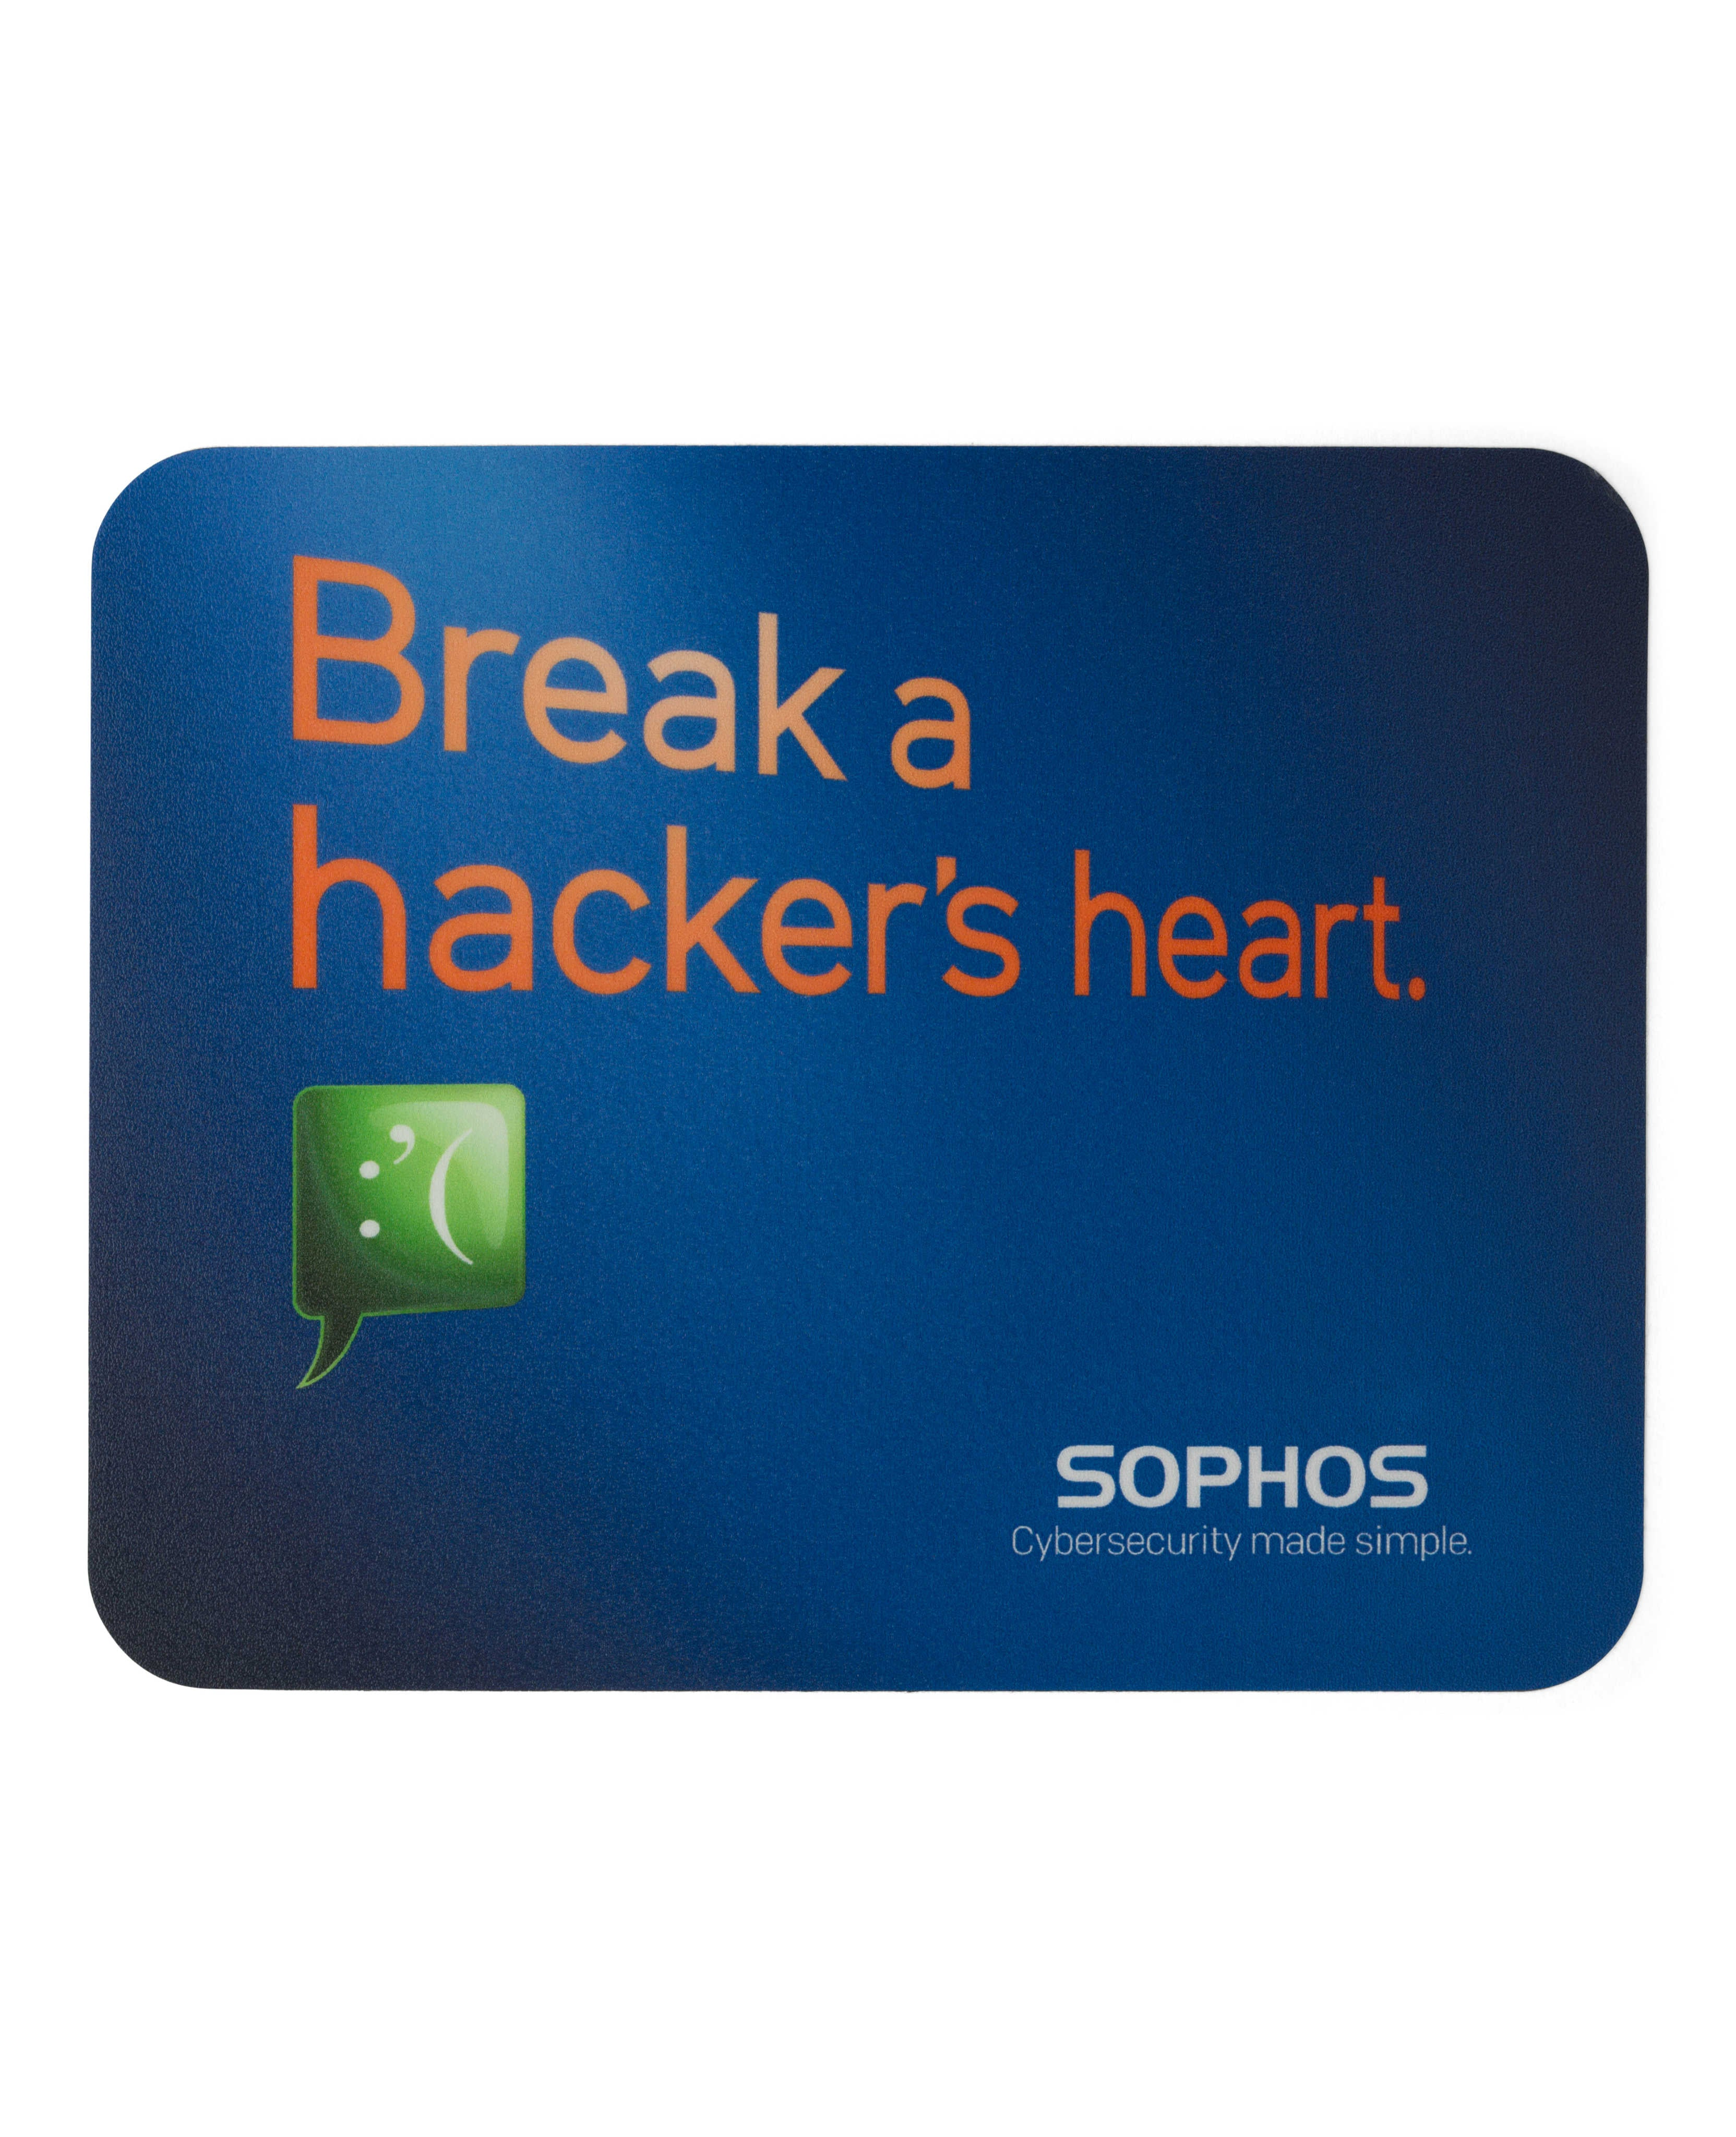 What are mouse pads made of Stationery Accessories The Sophos Store The Sophos Store Sophos Mouse Pad The Sophos Store